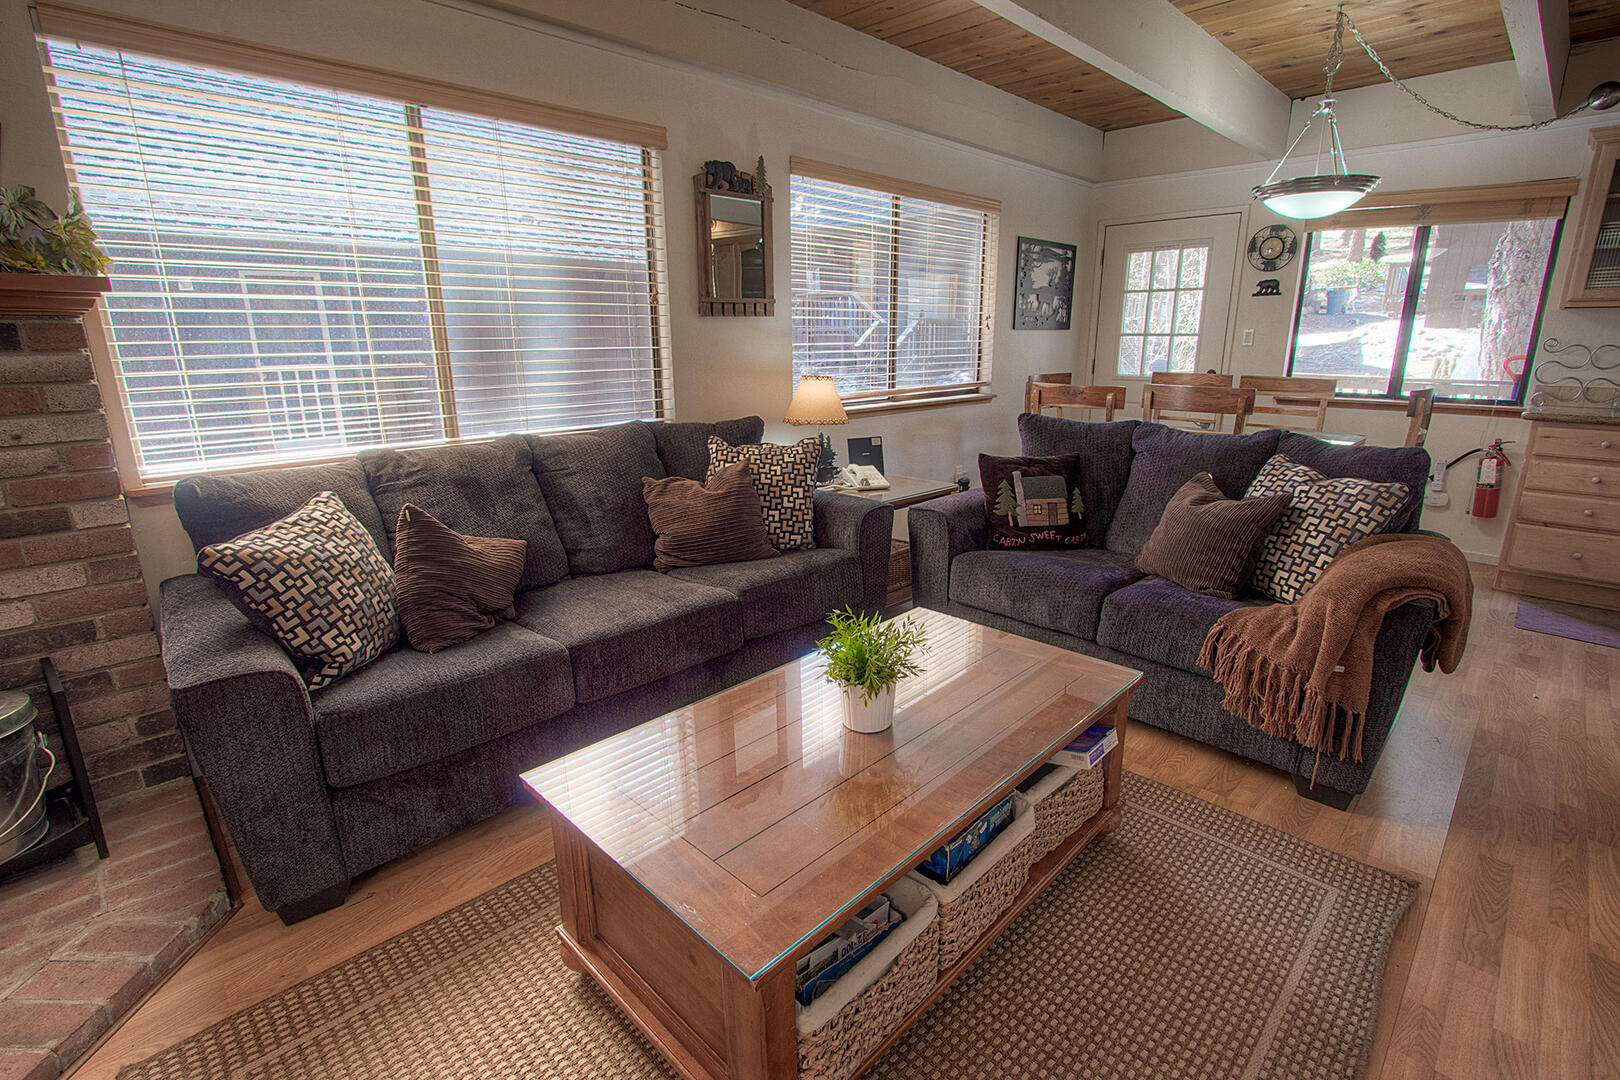 ivh0622 Living room